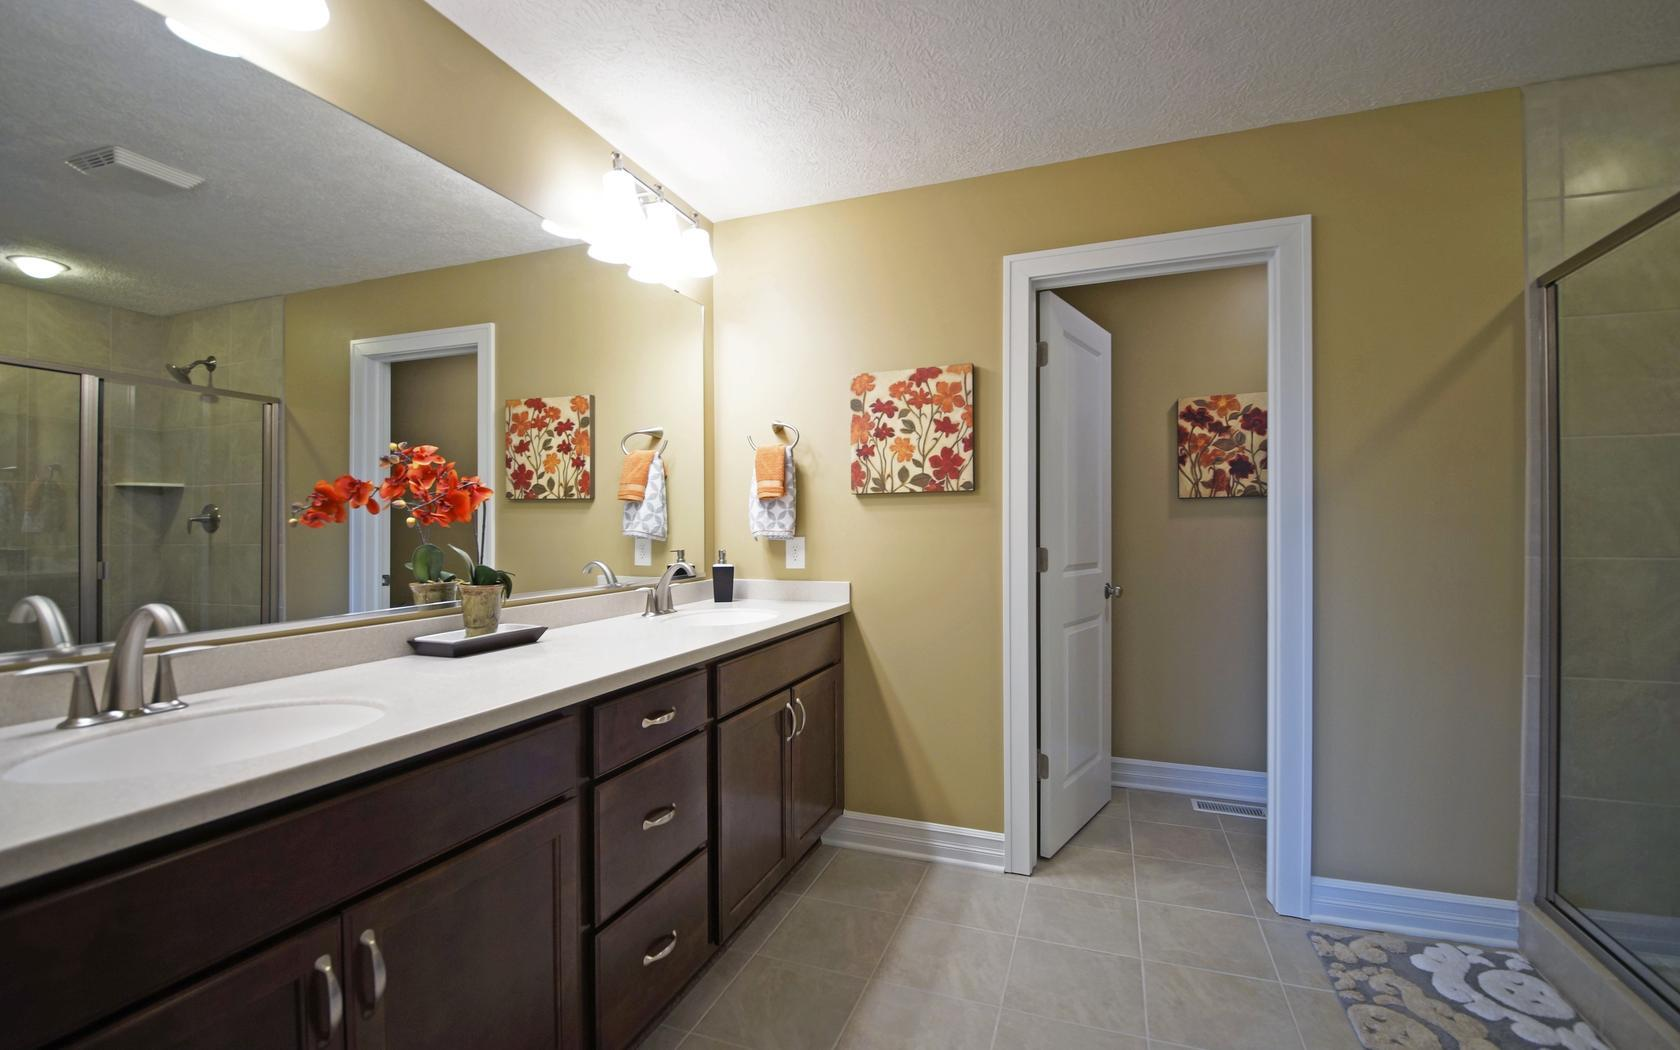 Bathroom featured in the Westwood By Mayberry Homes in Lansing, MI